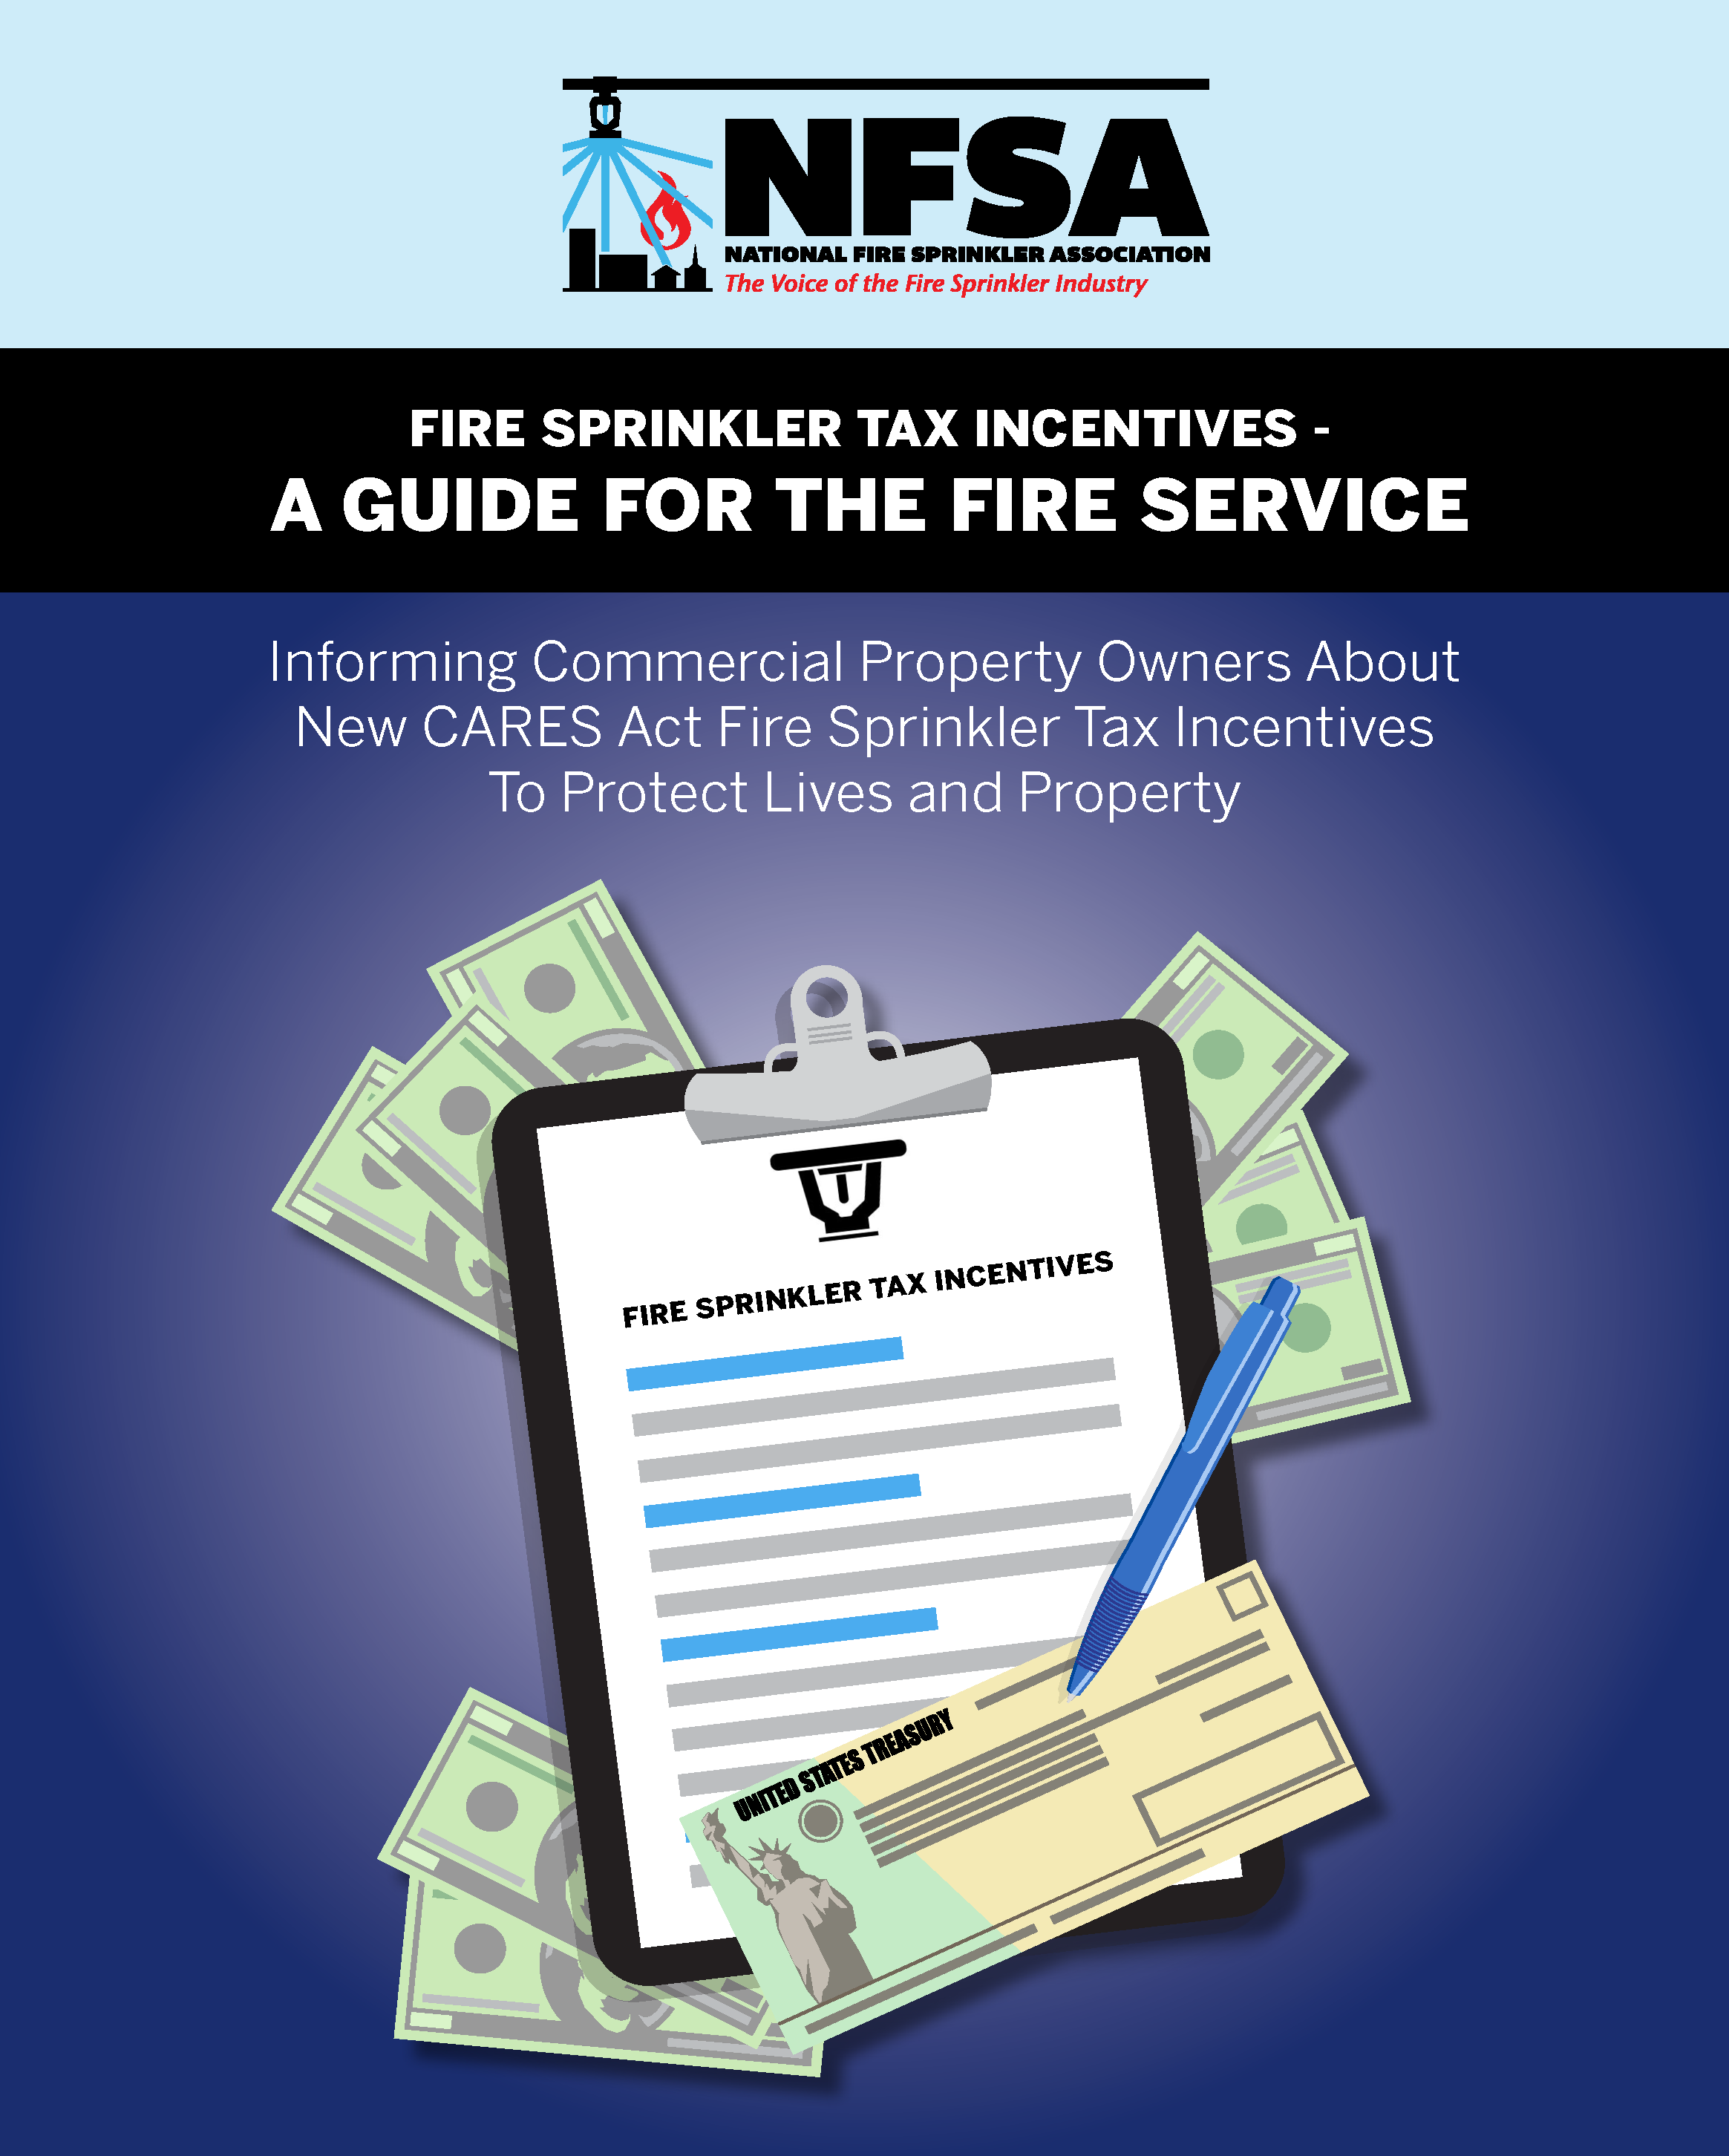 NFSA Guide, Fire Sprinkler Tax Incentives 2020